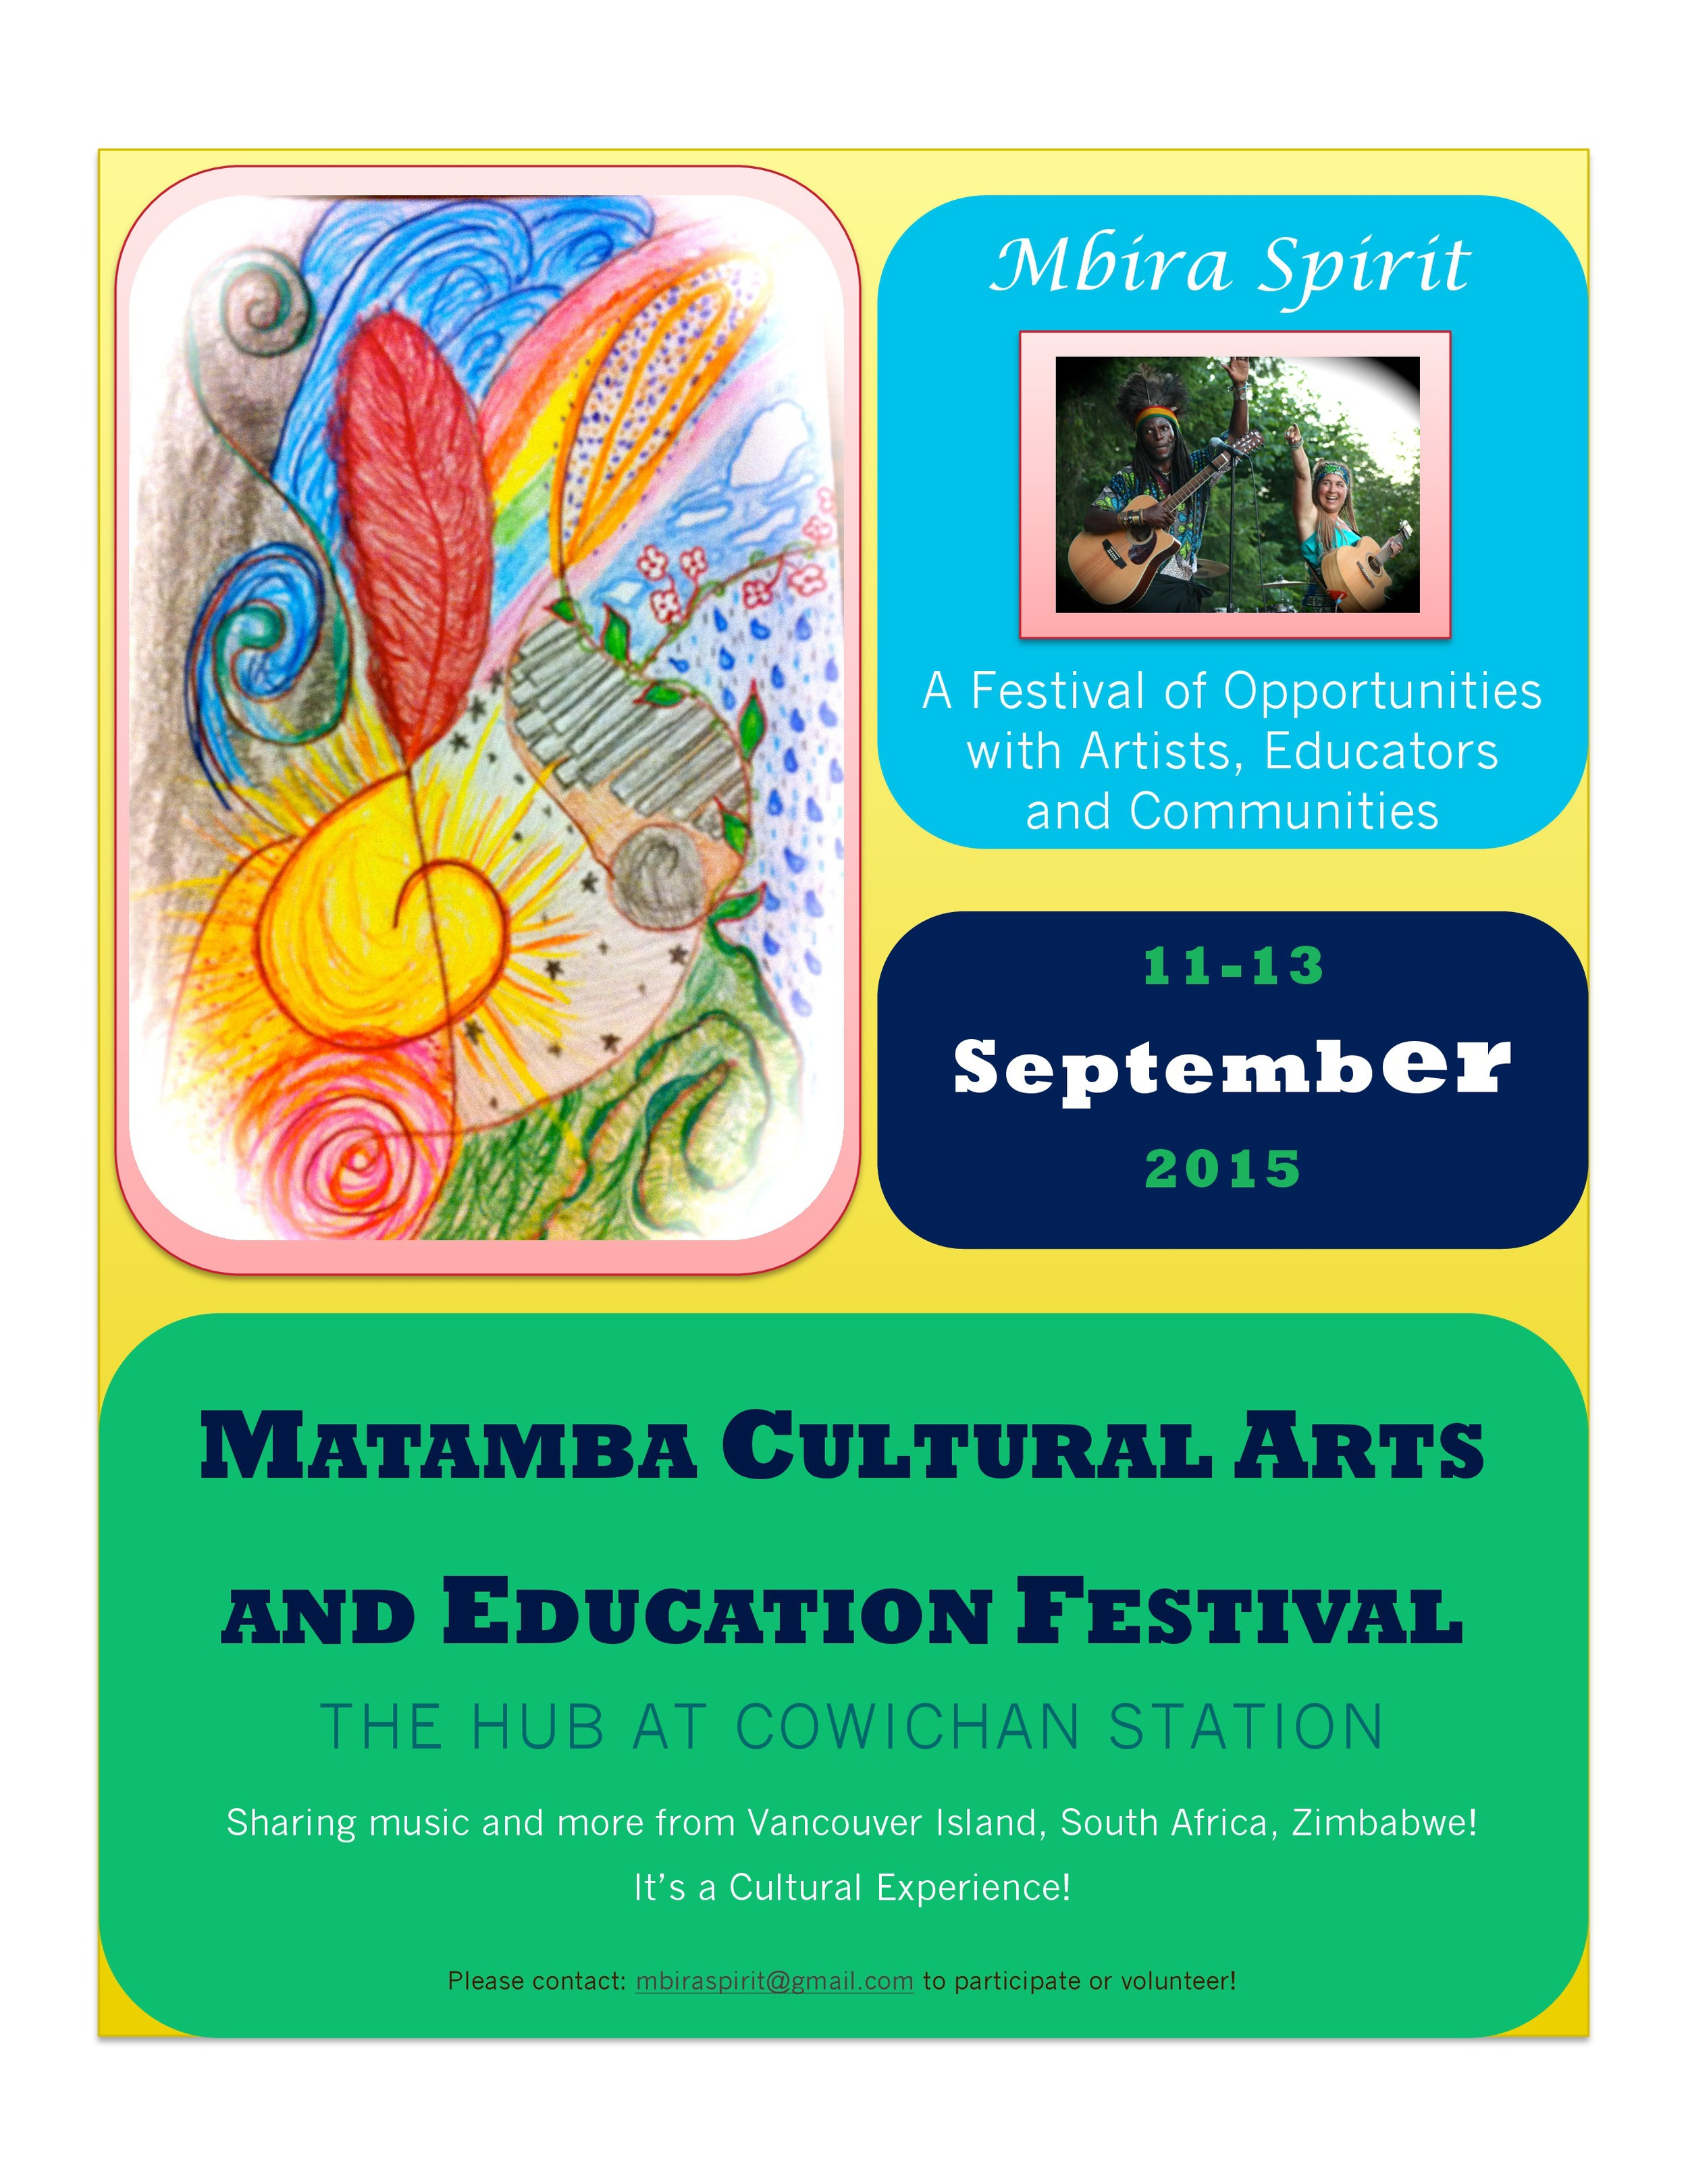 The first Matamba Cultural Arts and Education festival flyer.